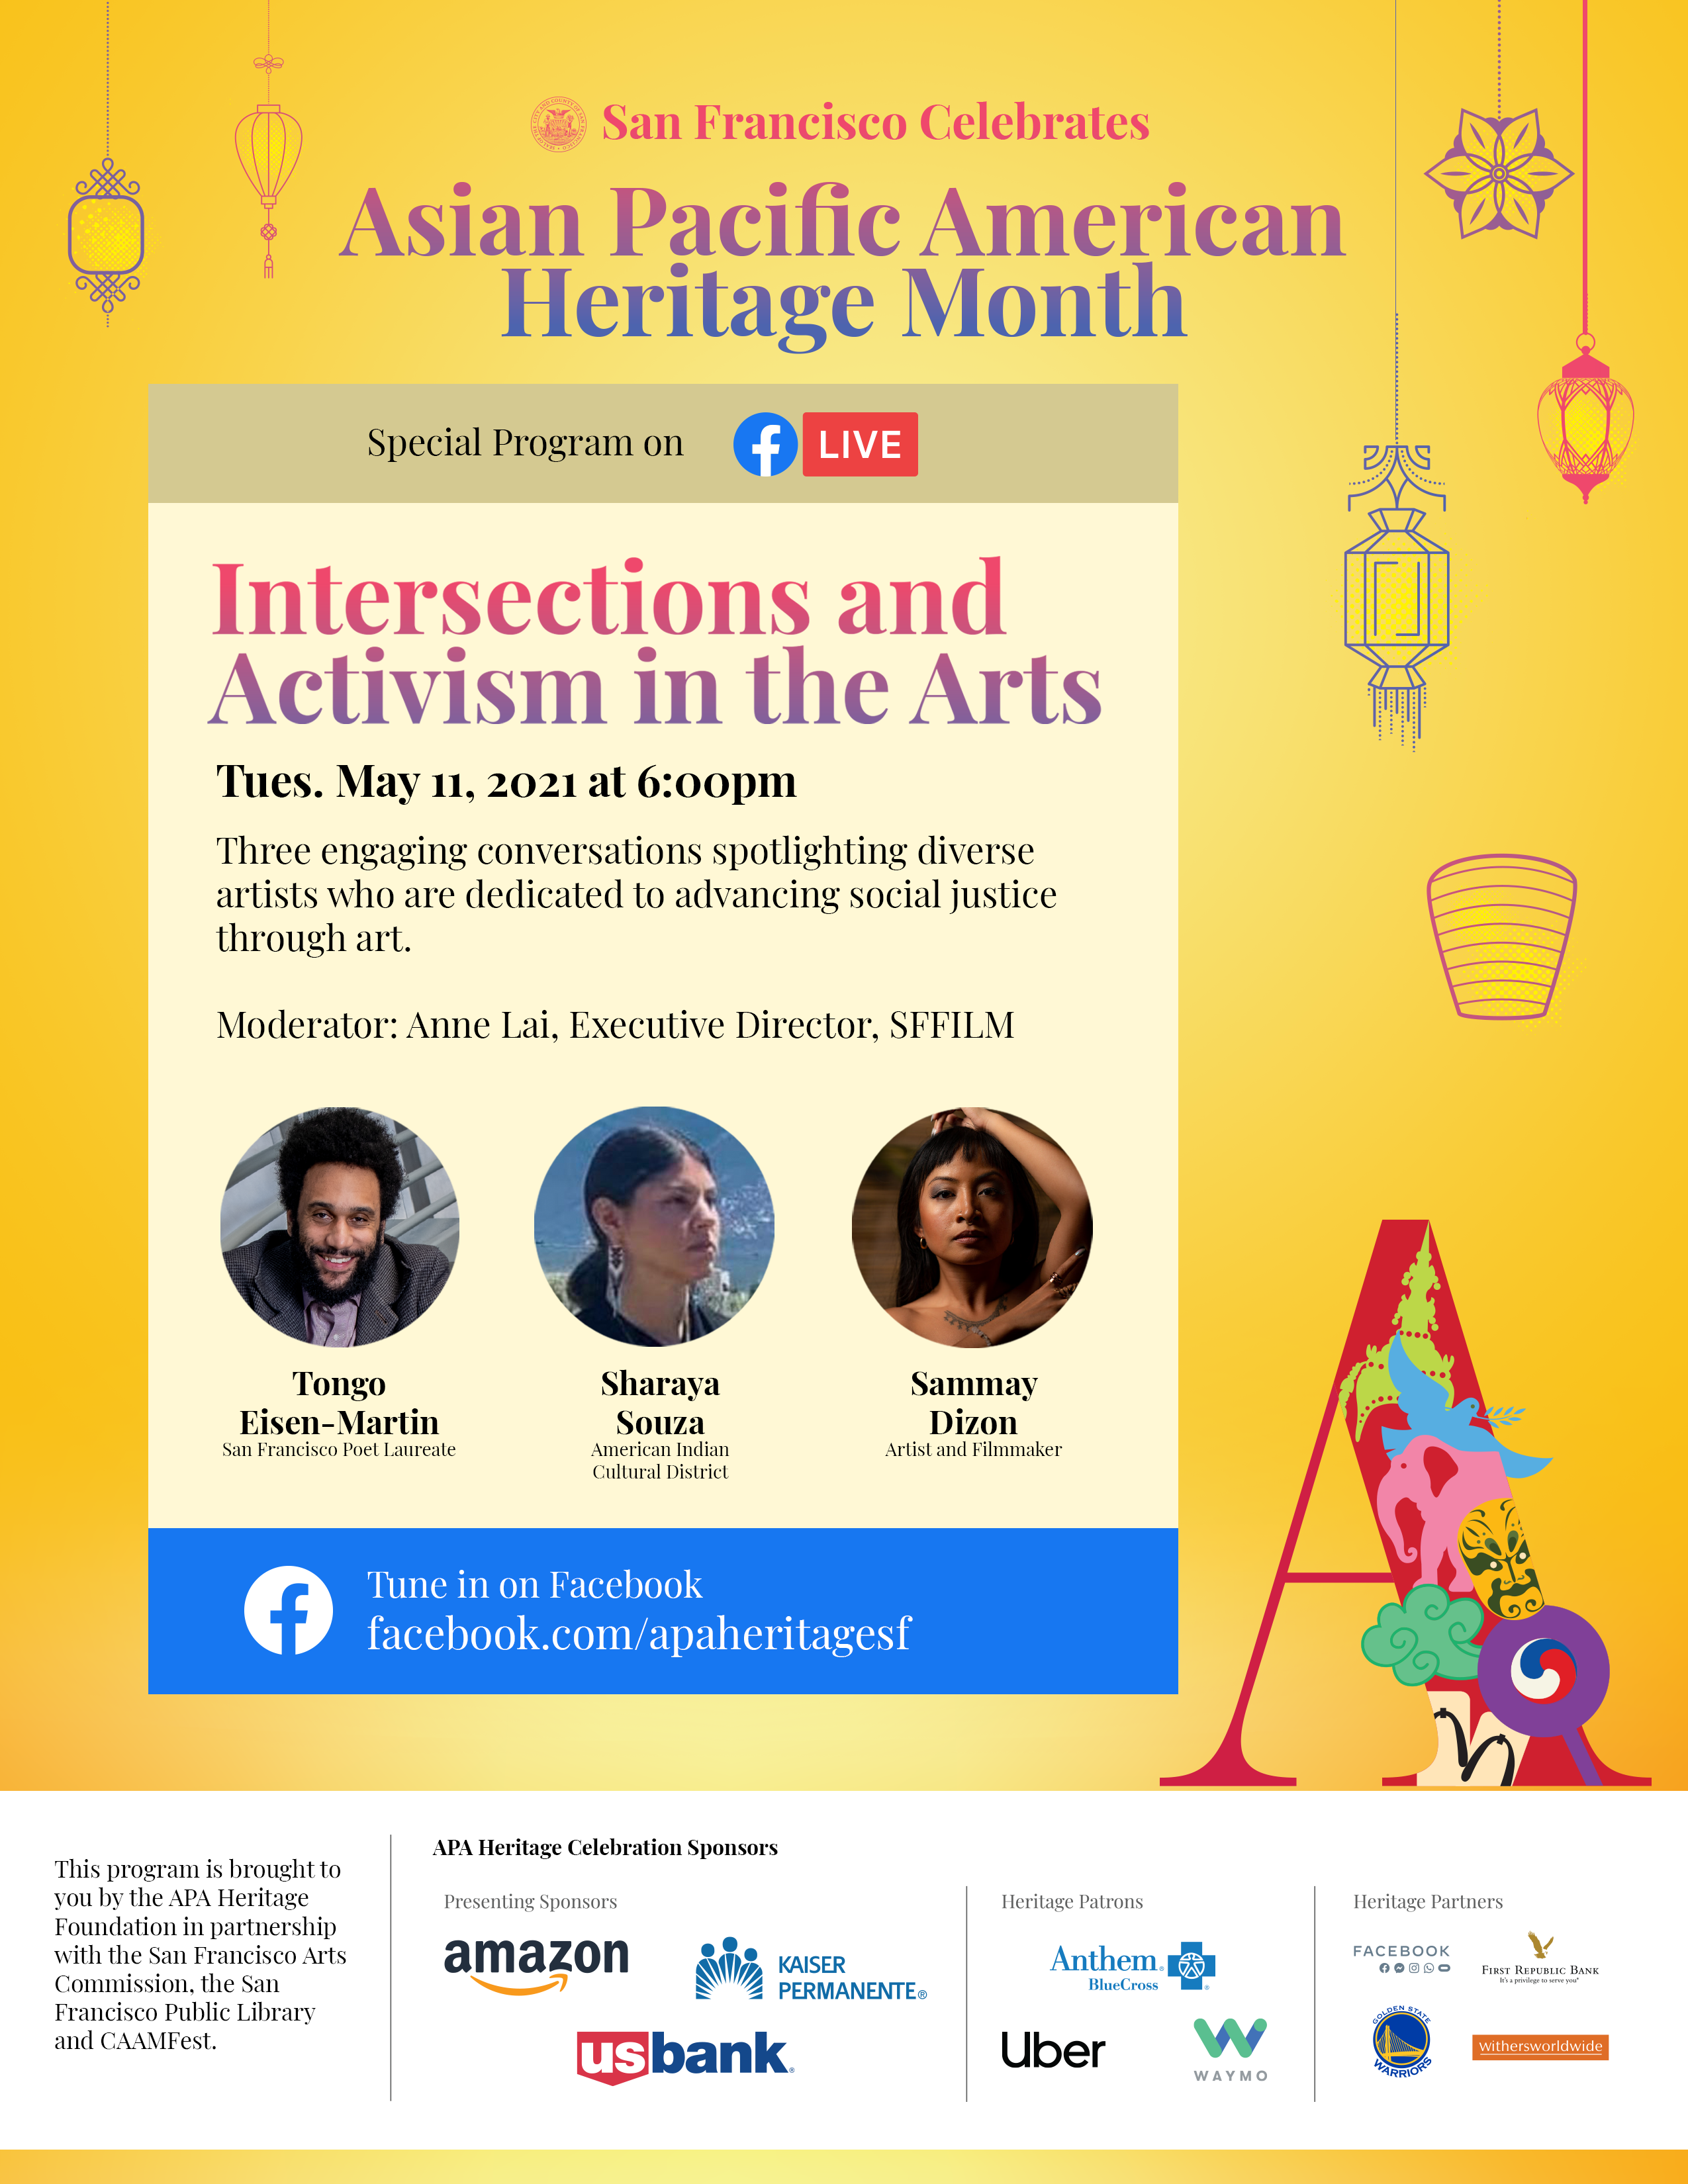 Intersections and Activism in the Arts